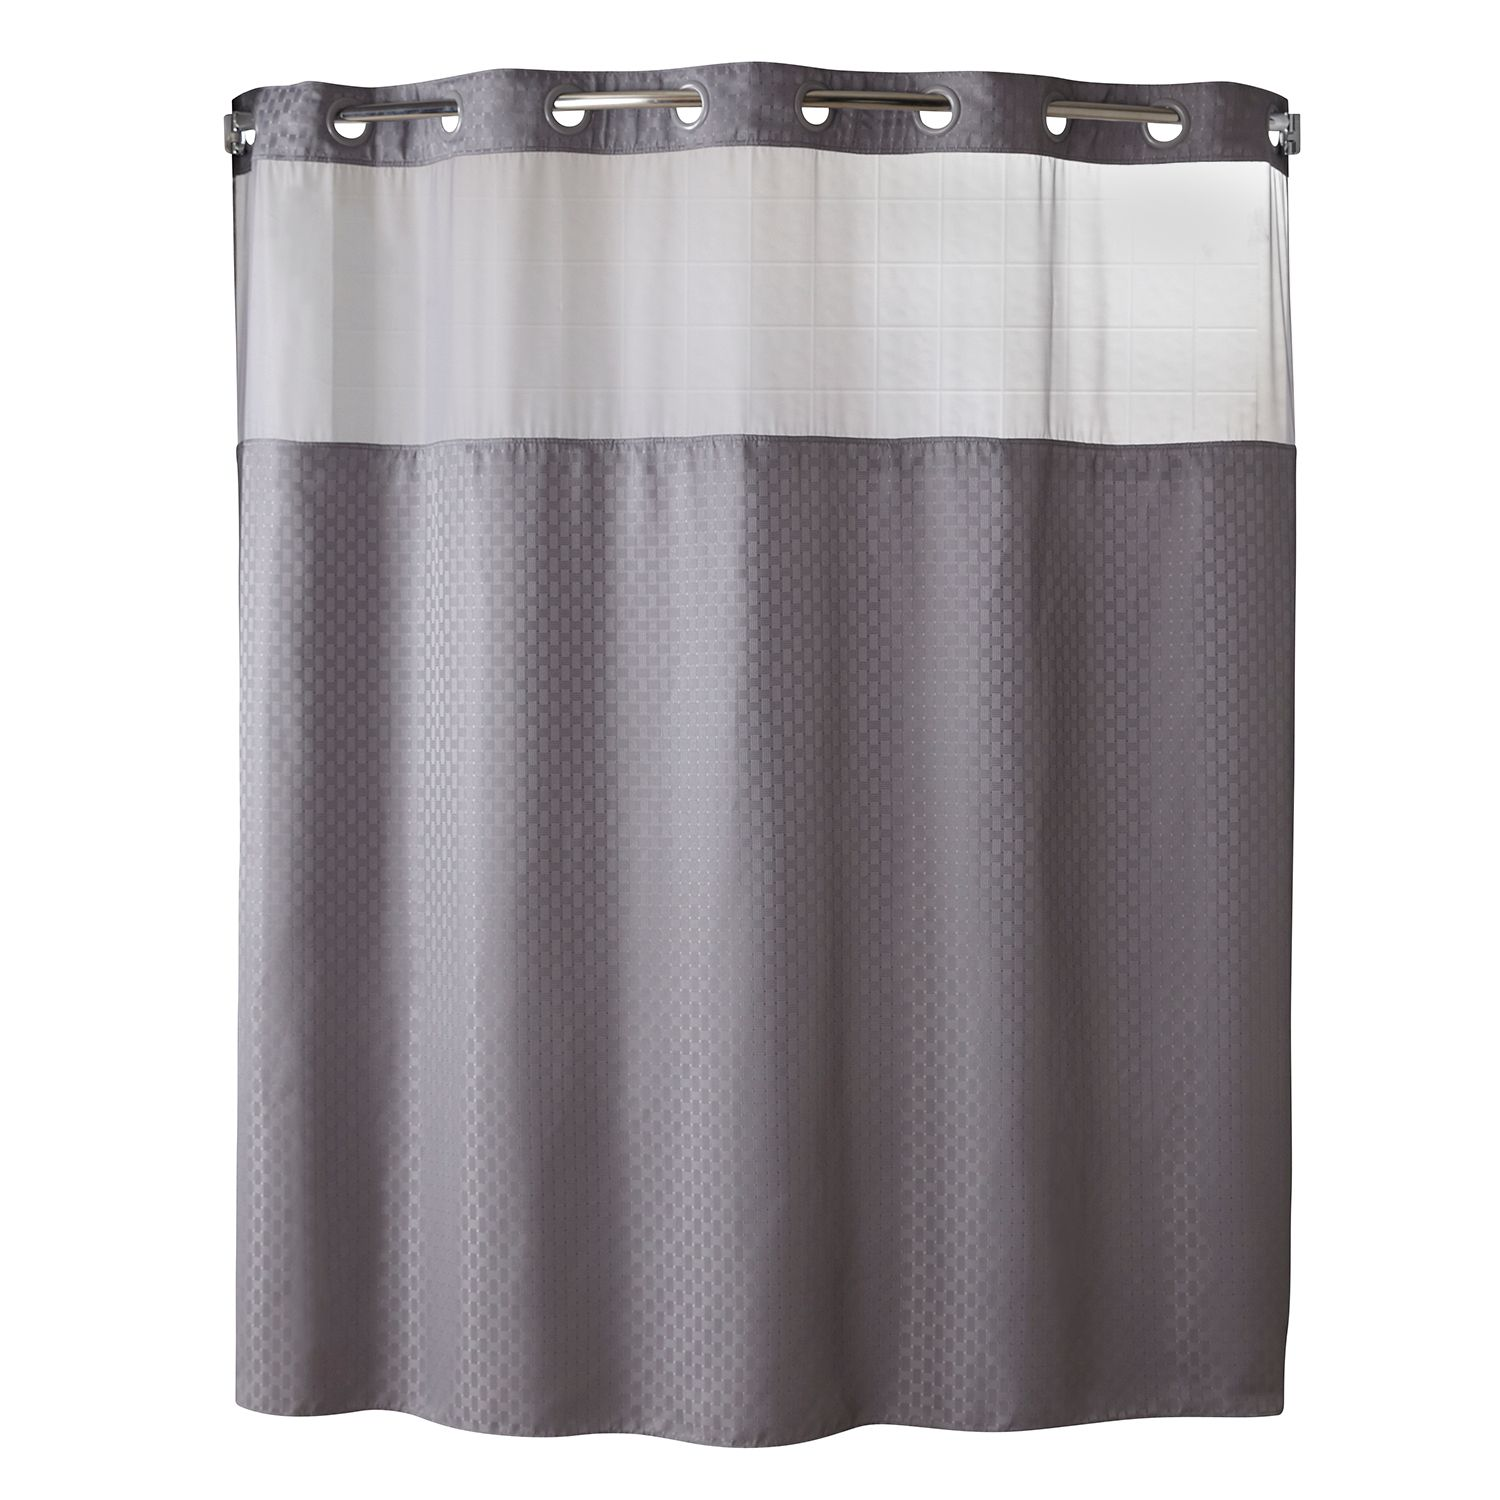 Silver Grey Shower Curtain Part - 31: Hookless Shower Curtains Shower Curtains U0026 Accessories - Bathroom, Bed U0026  Bath | Kohlu0027s